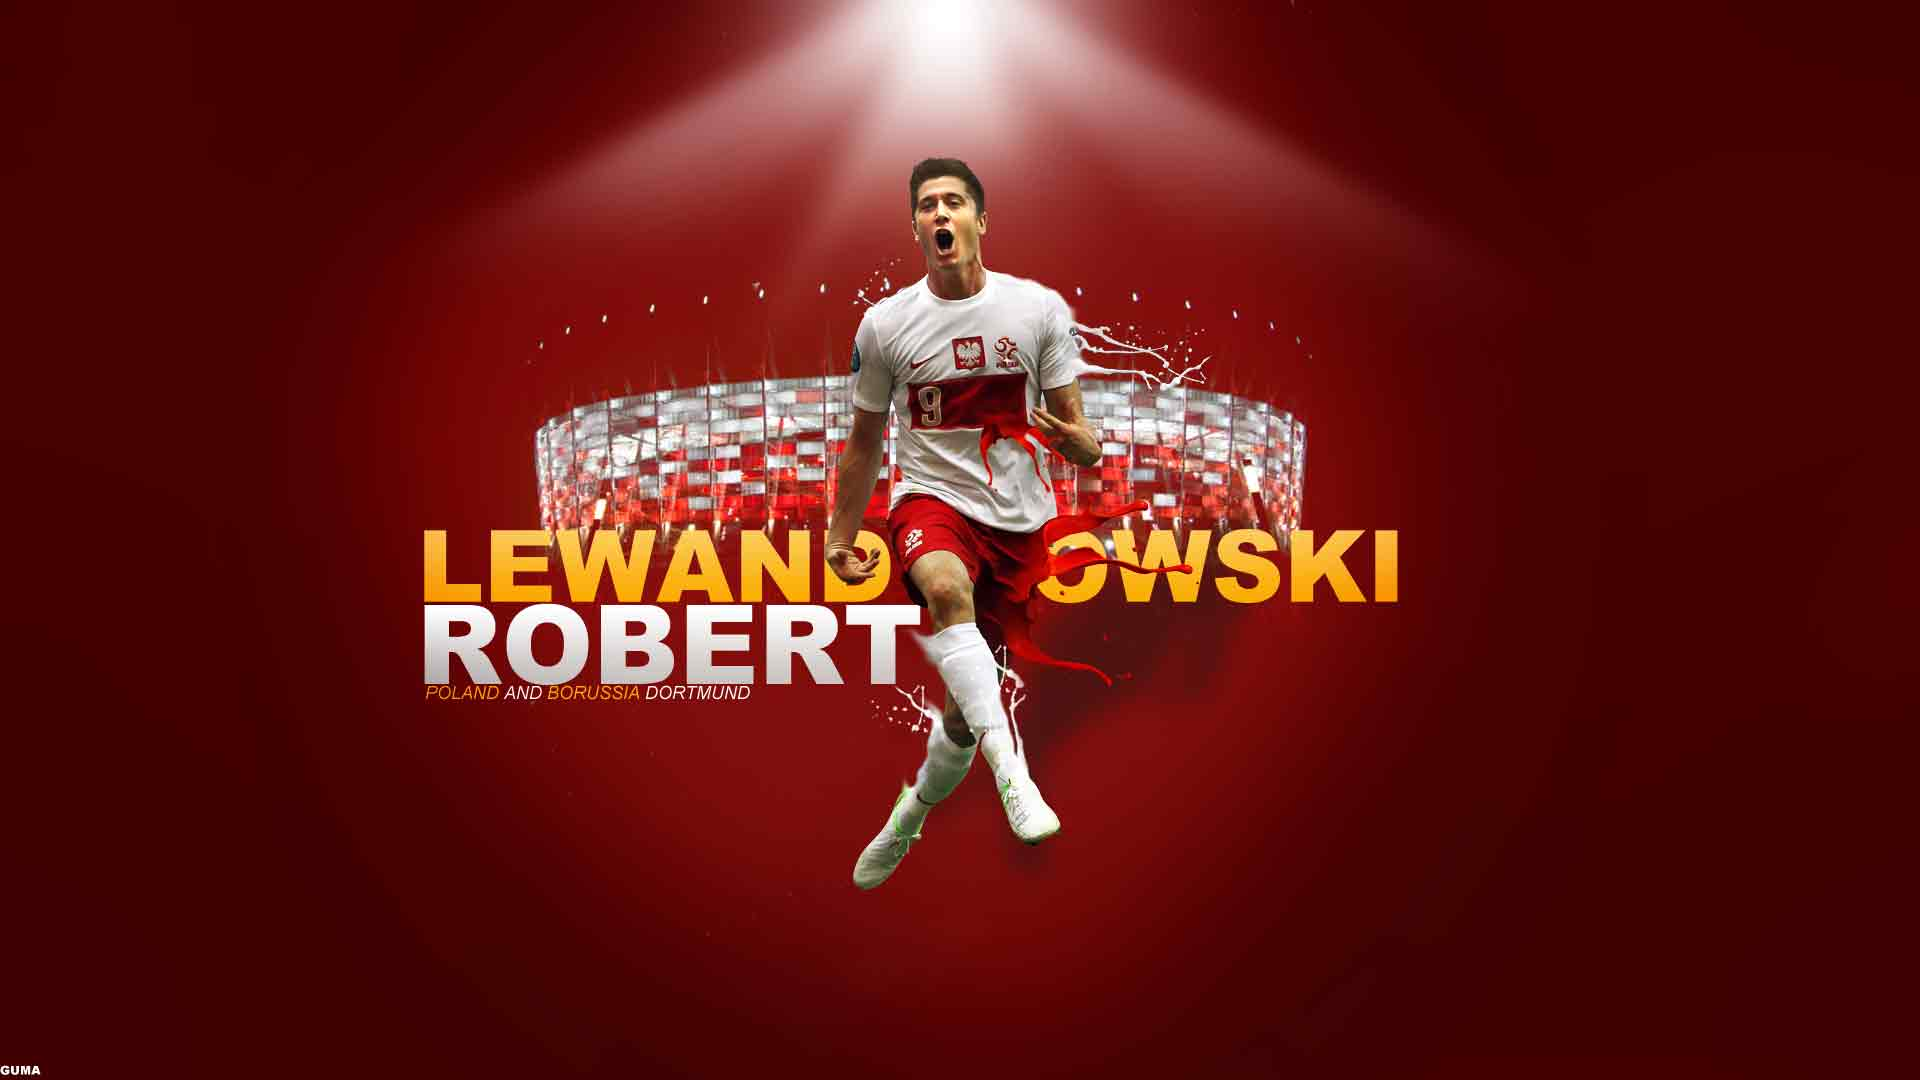 Polish Robert Lewandowski Wallpapers